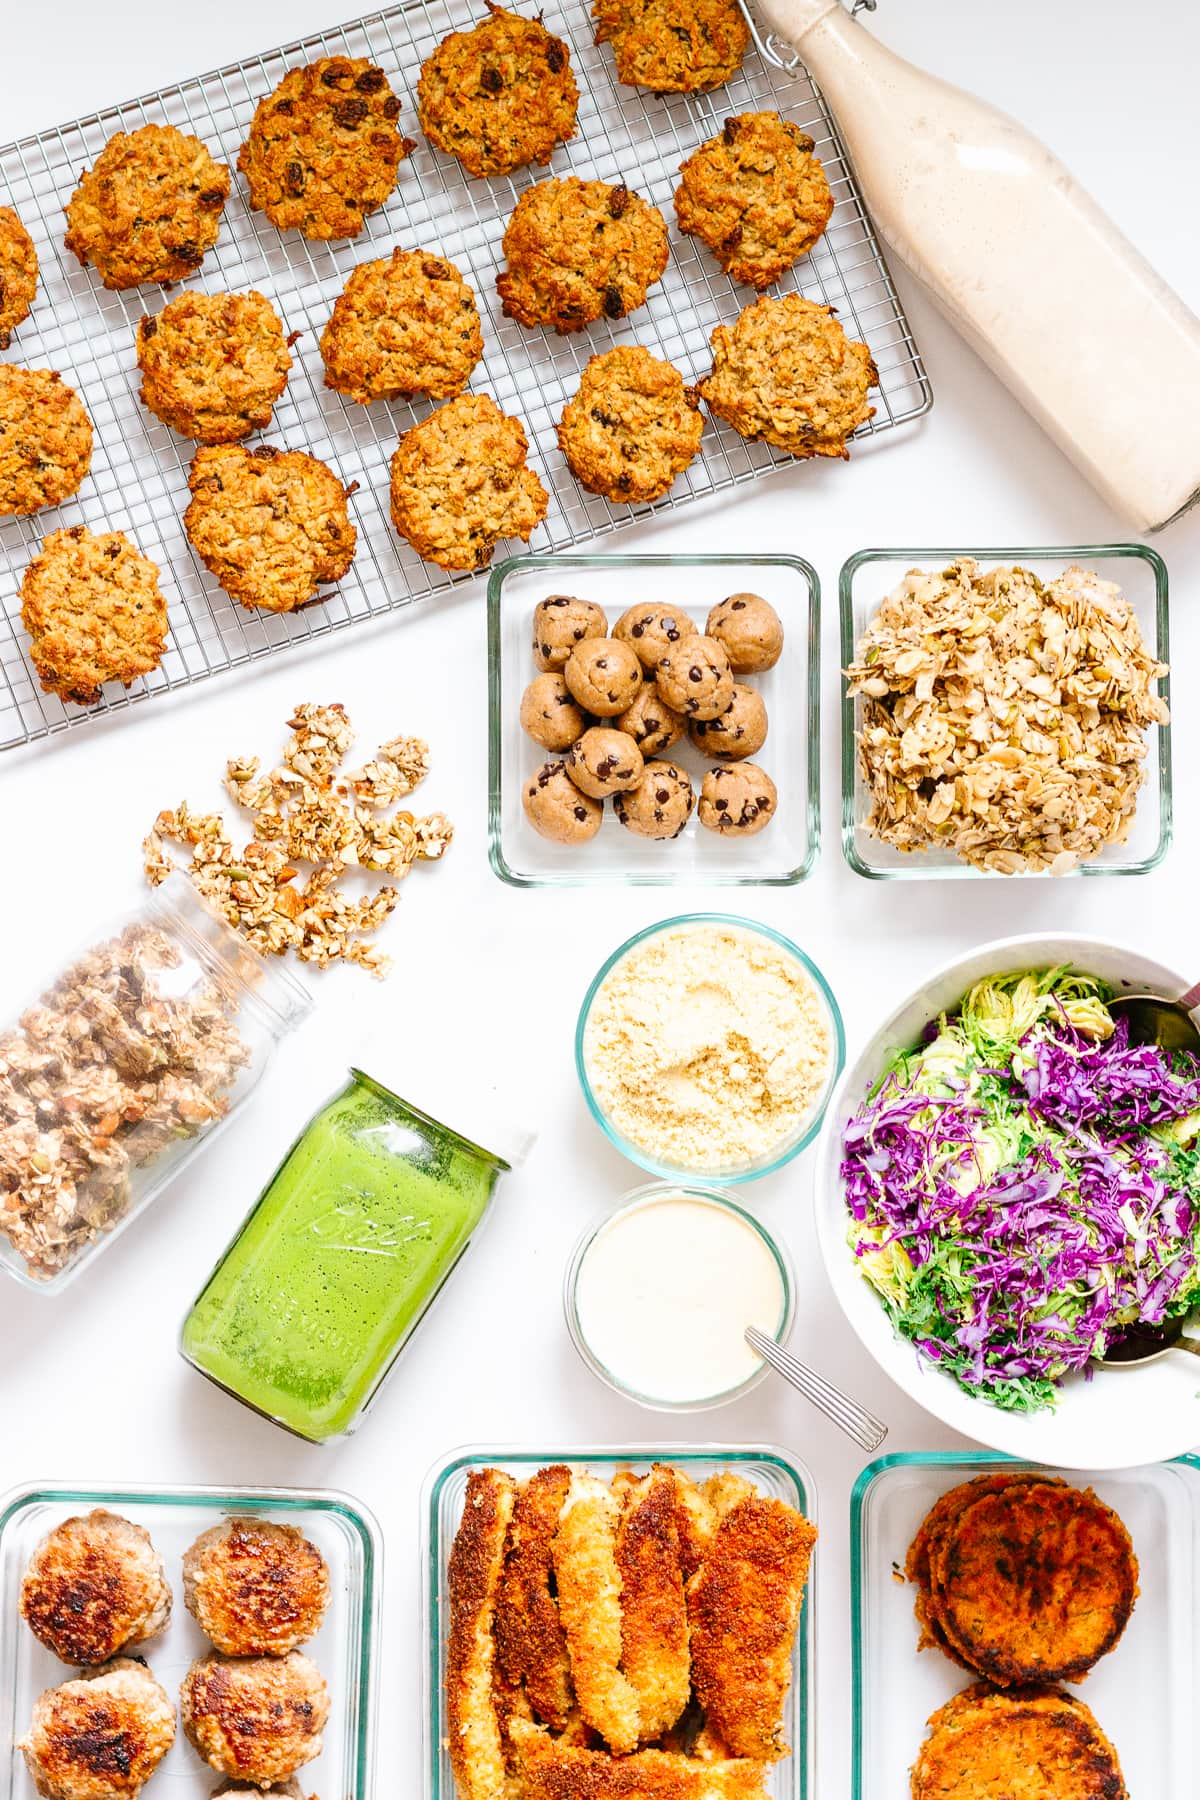 Top down photo of a variety of recipes meal prepped from The HealthNut Cookbook